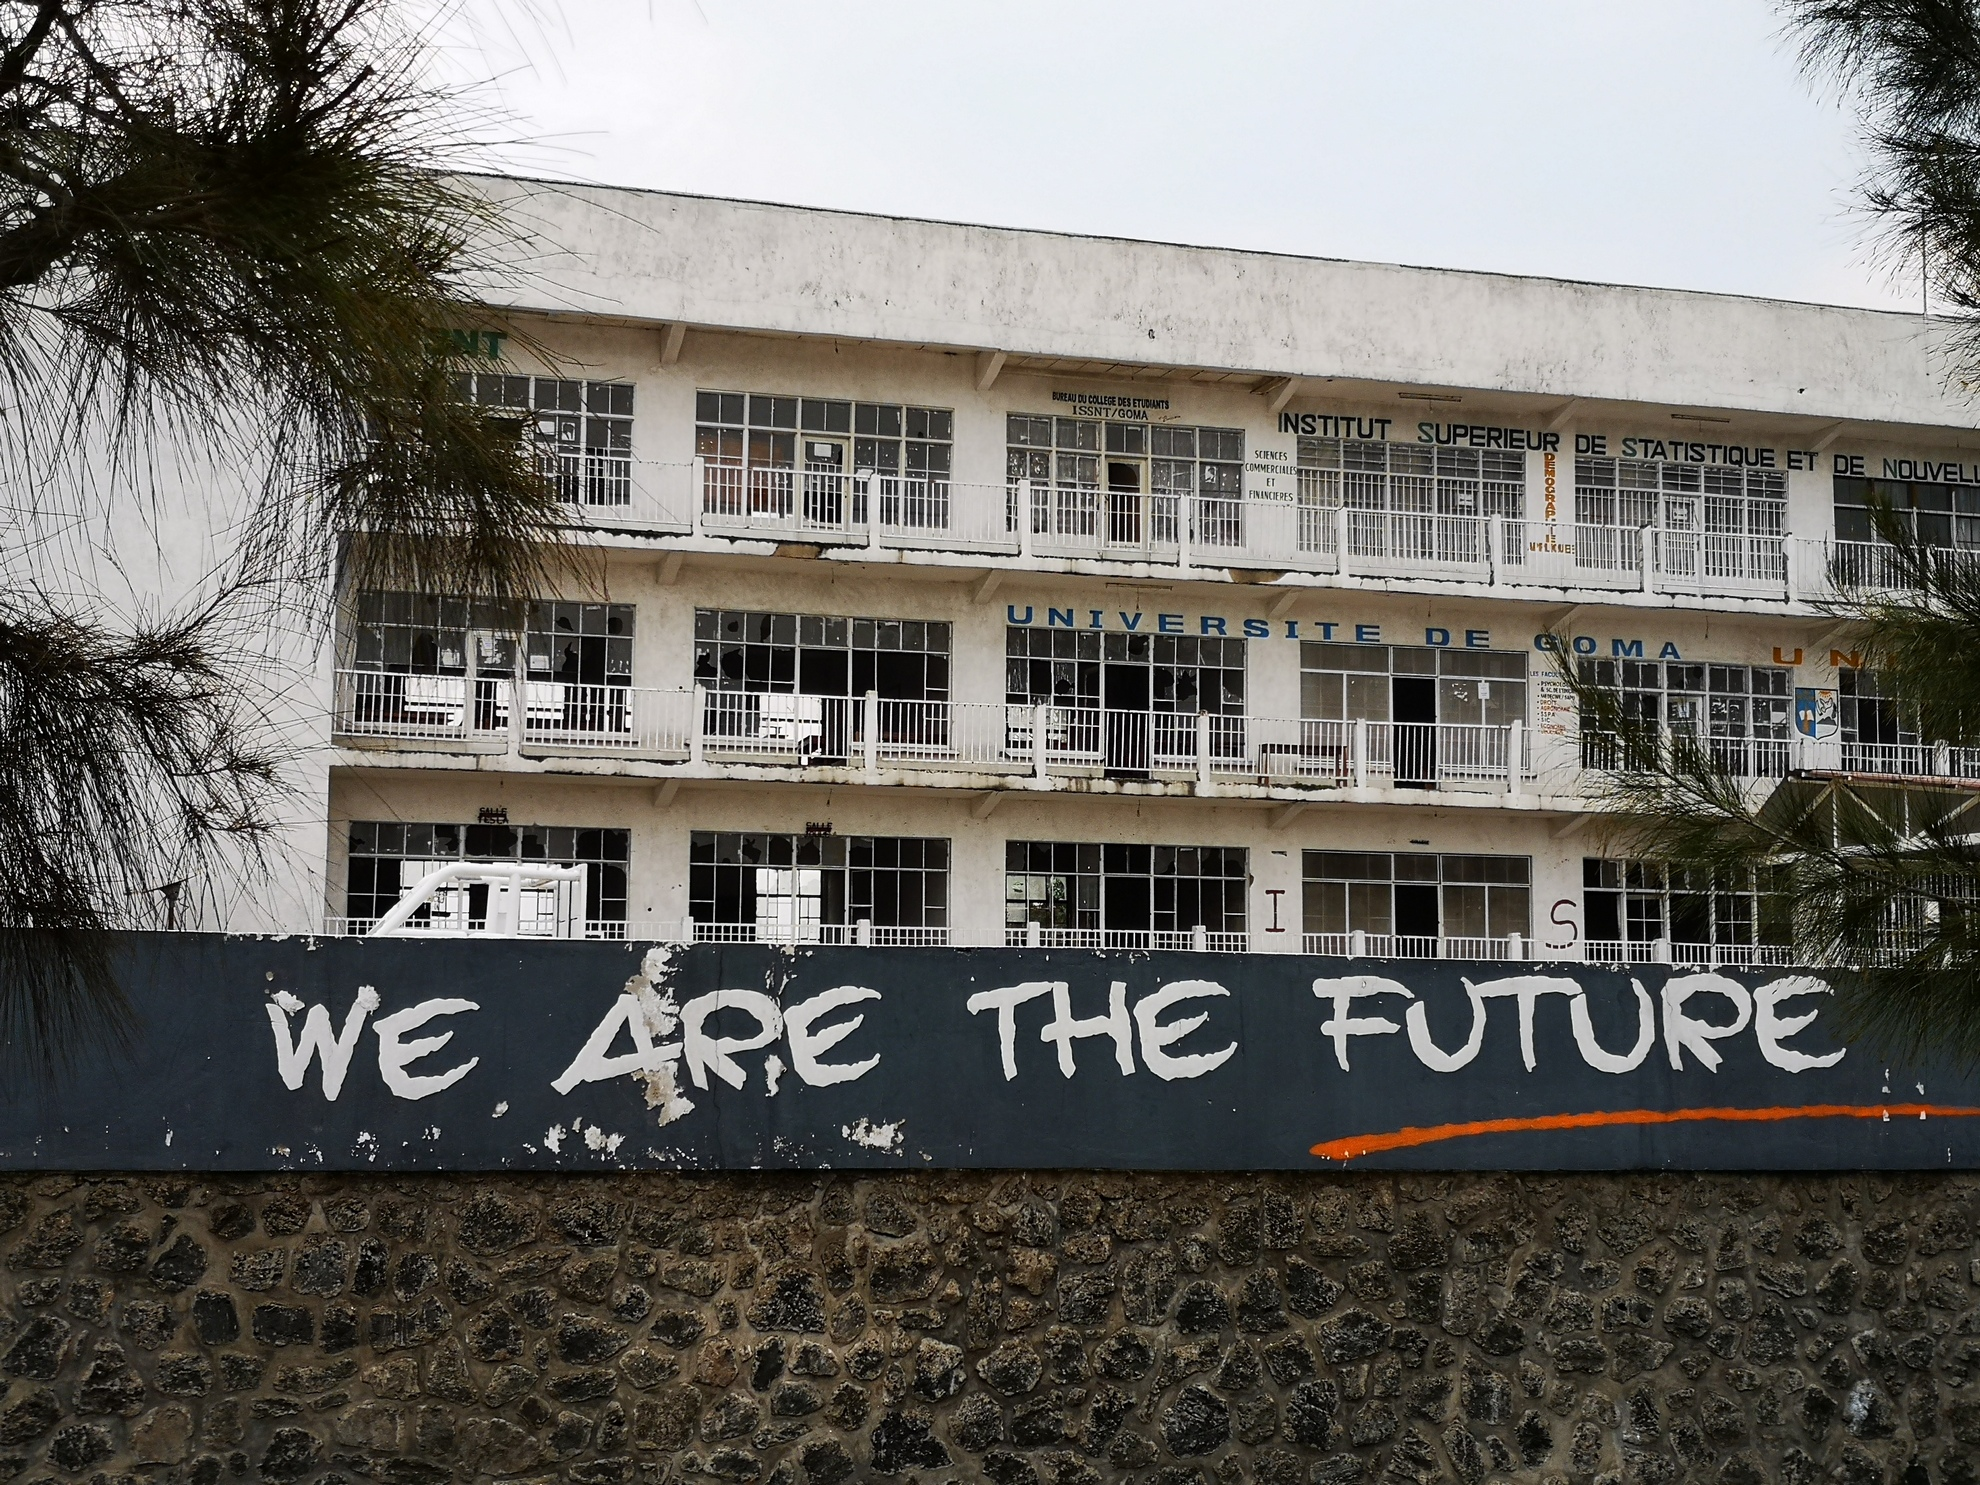 """Graffiti, """"We are the future"""" is spray painted on the wall in front of the University of Goma. In the background, half of the windows in the five-story building are broken."""